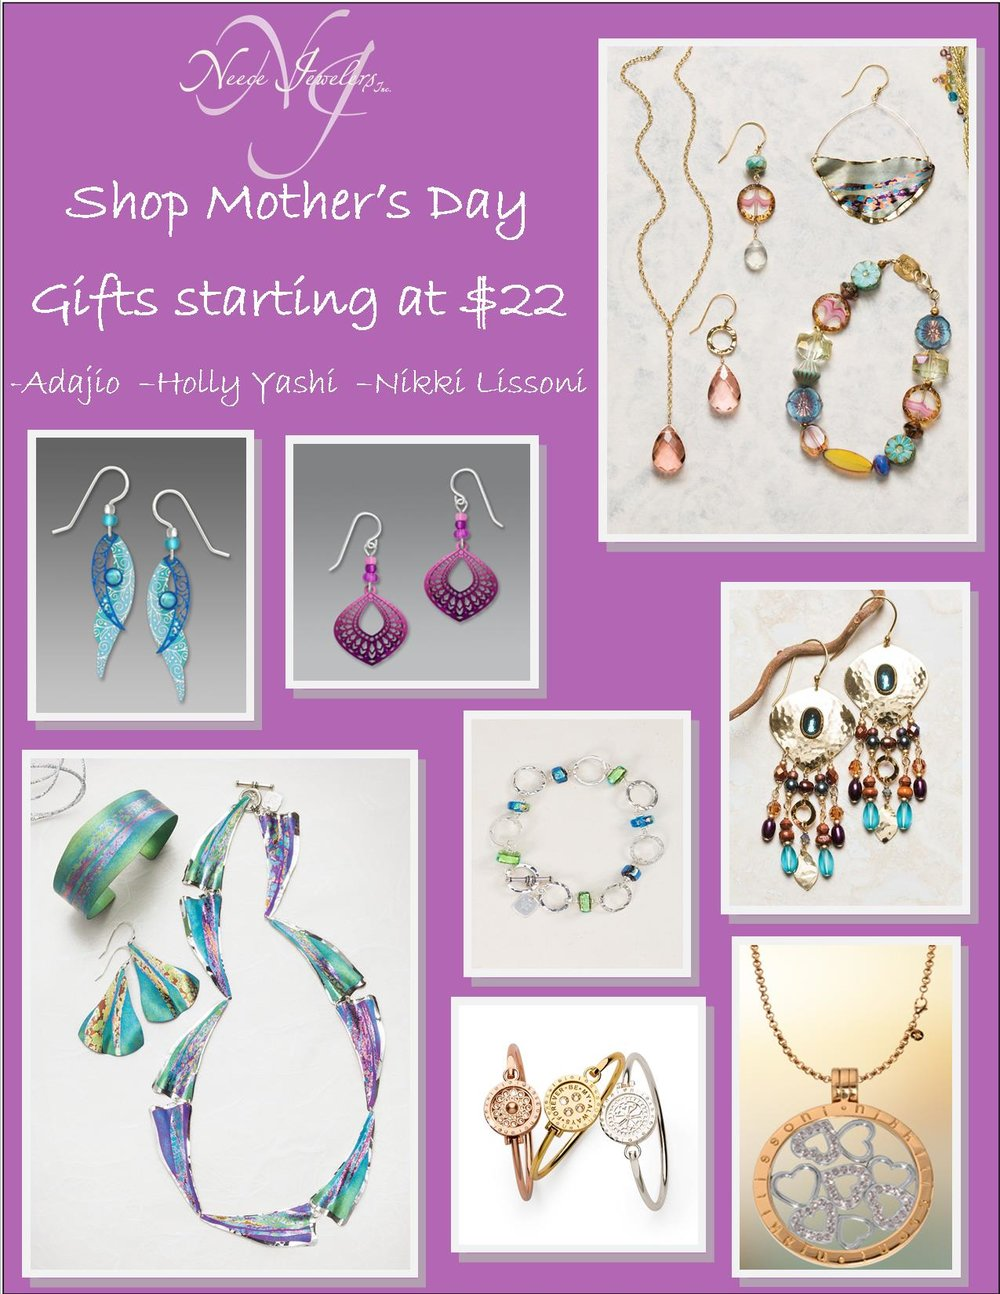 mothers day gift ideas starting at $22.jpg